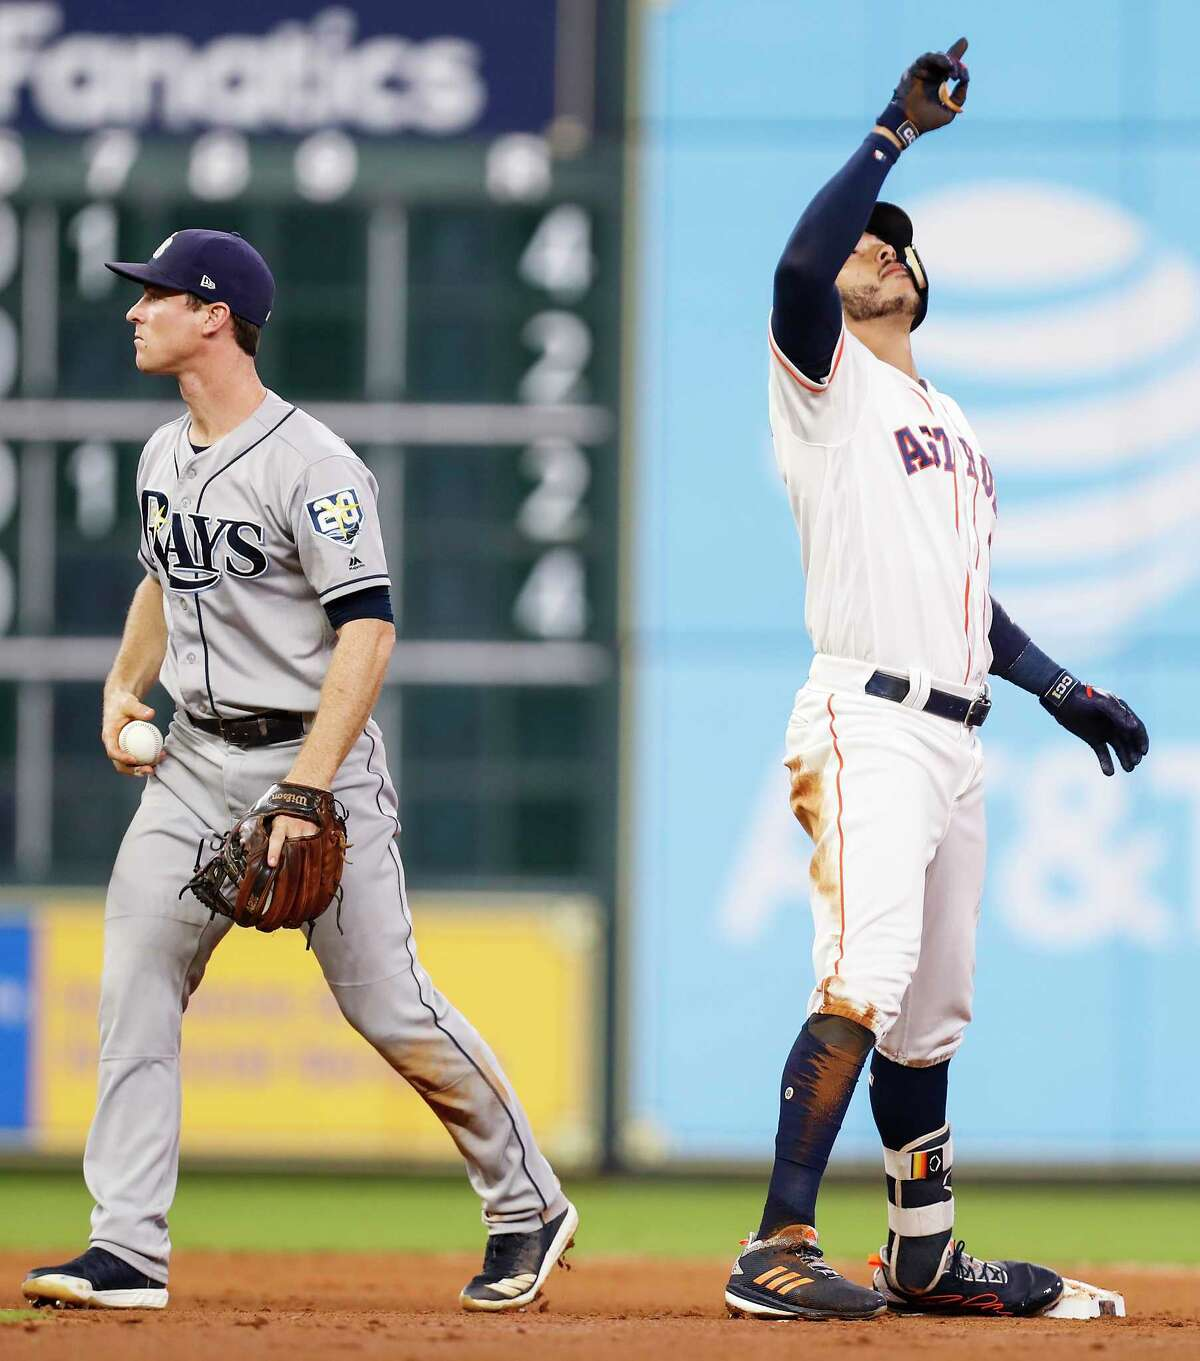 Houston Astros shortstop Carlos Correa (1) reacts after sliding into secdon ahead of the tag by Tampa Bay Rays second baseman Joey Wendle for a double during the fourth inning of a major league baseball game at Minute Maid Park on Monday, June 18, 2018, in Houston.